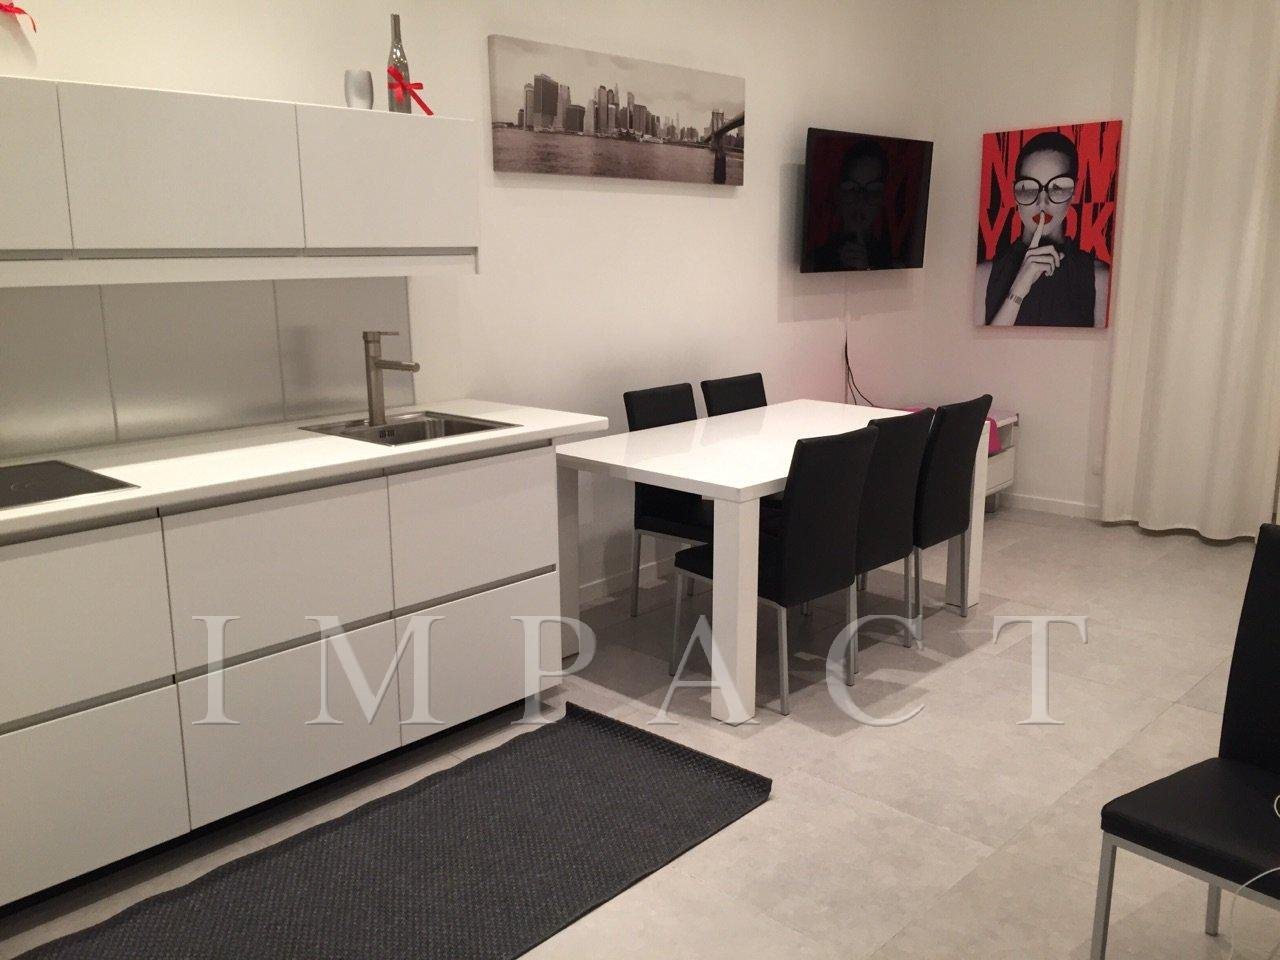 3 bedrooms apartment to rent, Cannes center